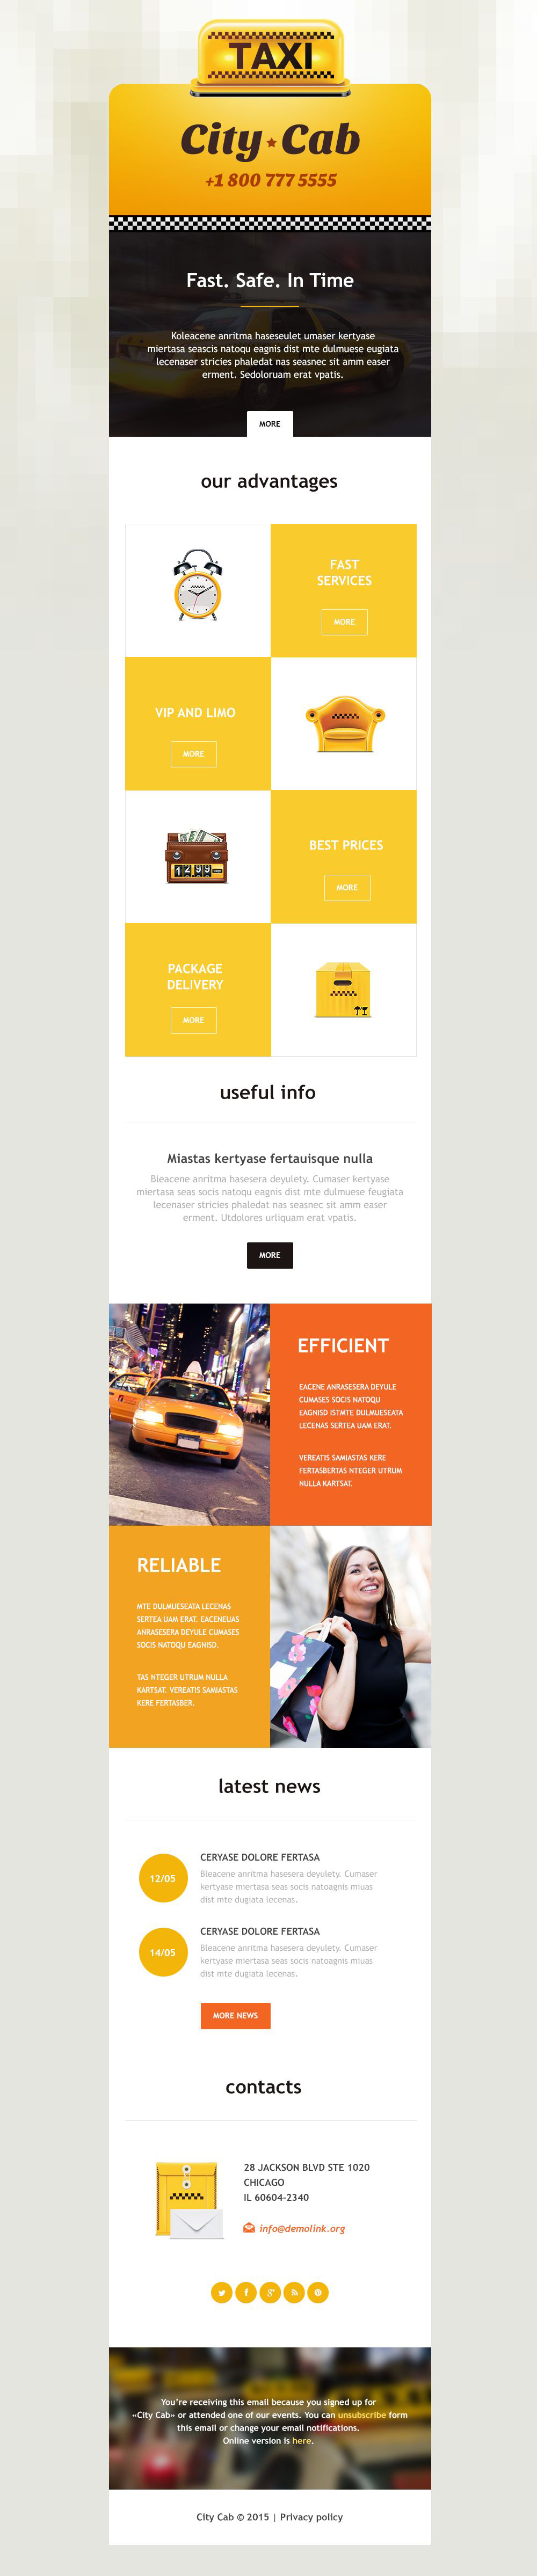 The Taxi Services Company Newsletter Template Design 54614, one of the best Newsletter templates of its kind (transportation, most popular), also known as taxi services company Newsletter template, cab Newsletter template, car Newsletter template, city Newsletter template, time Newsletter template, fast Newsletter template, speed Newsletter template, driver Newsletter template, trip Newsletter template, safety Newsletter template, need Newsletter template, urgent Newsletter template, stop transport Newsletter template, journey Newsletter template, phone and related with taxi services company, cab, car, city, time, fast, speed, driver, trip, safety, need, urgent, stop transport, journey, phone, etc.